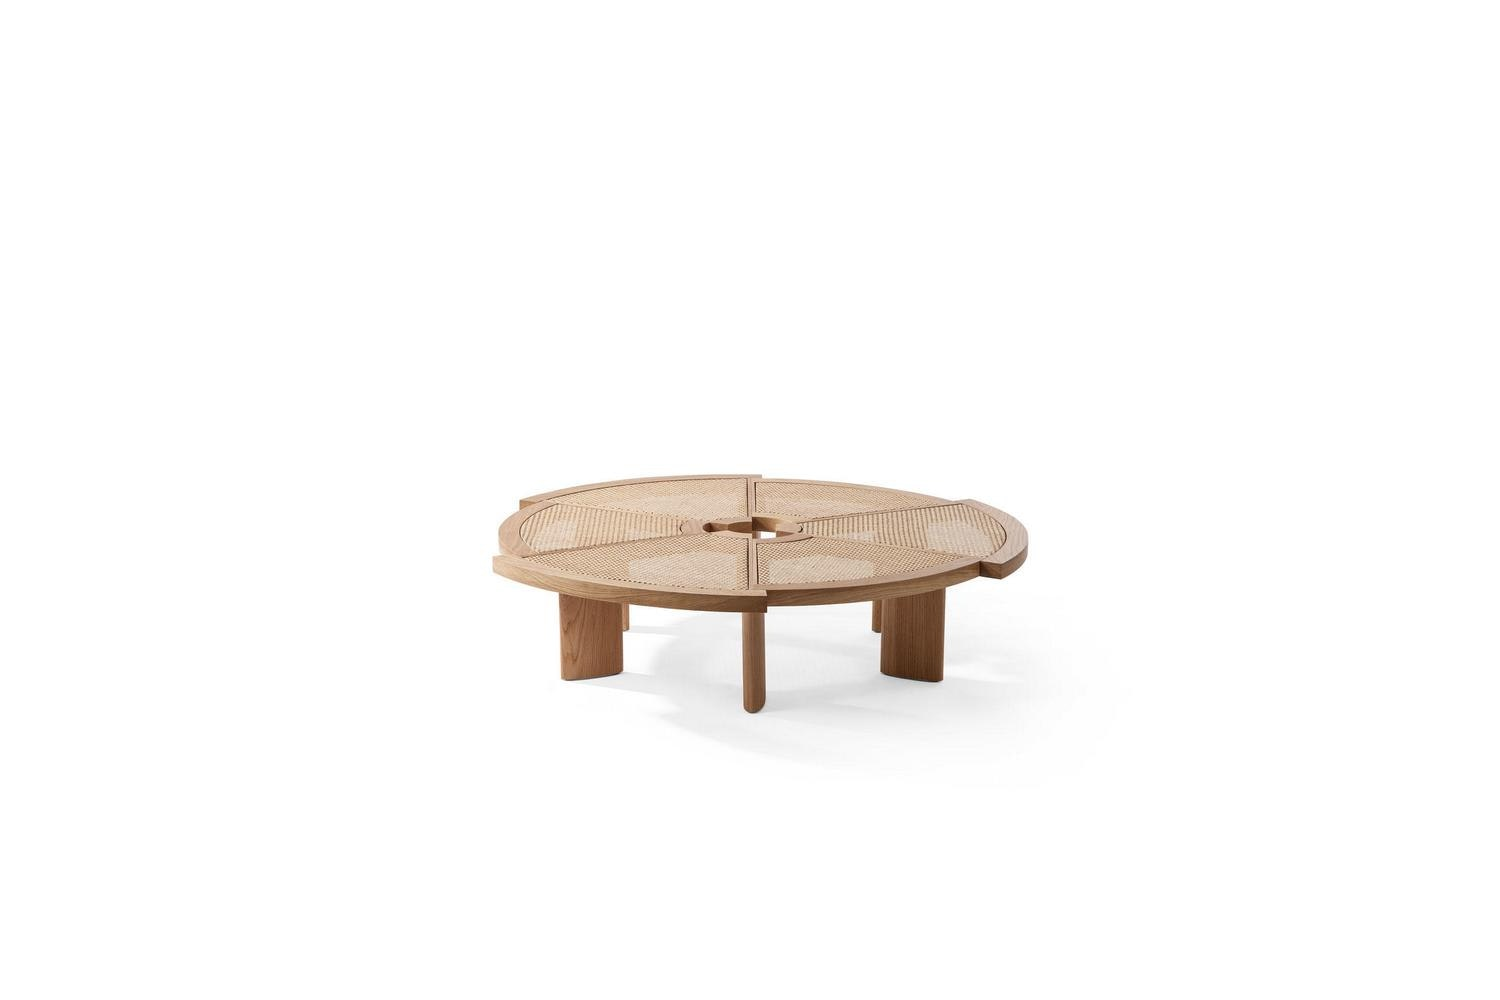 529 Rio Coffee Table by Charlotte Perriand for Cassina